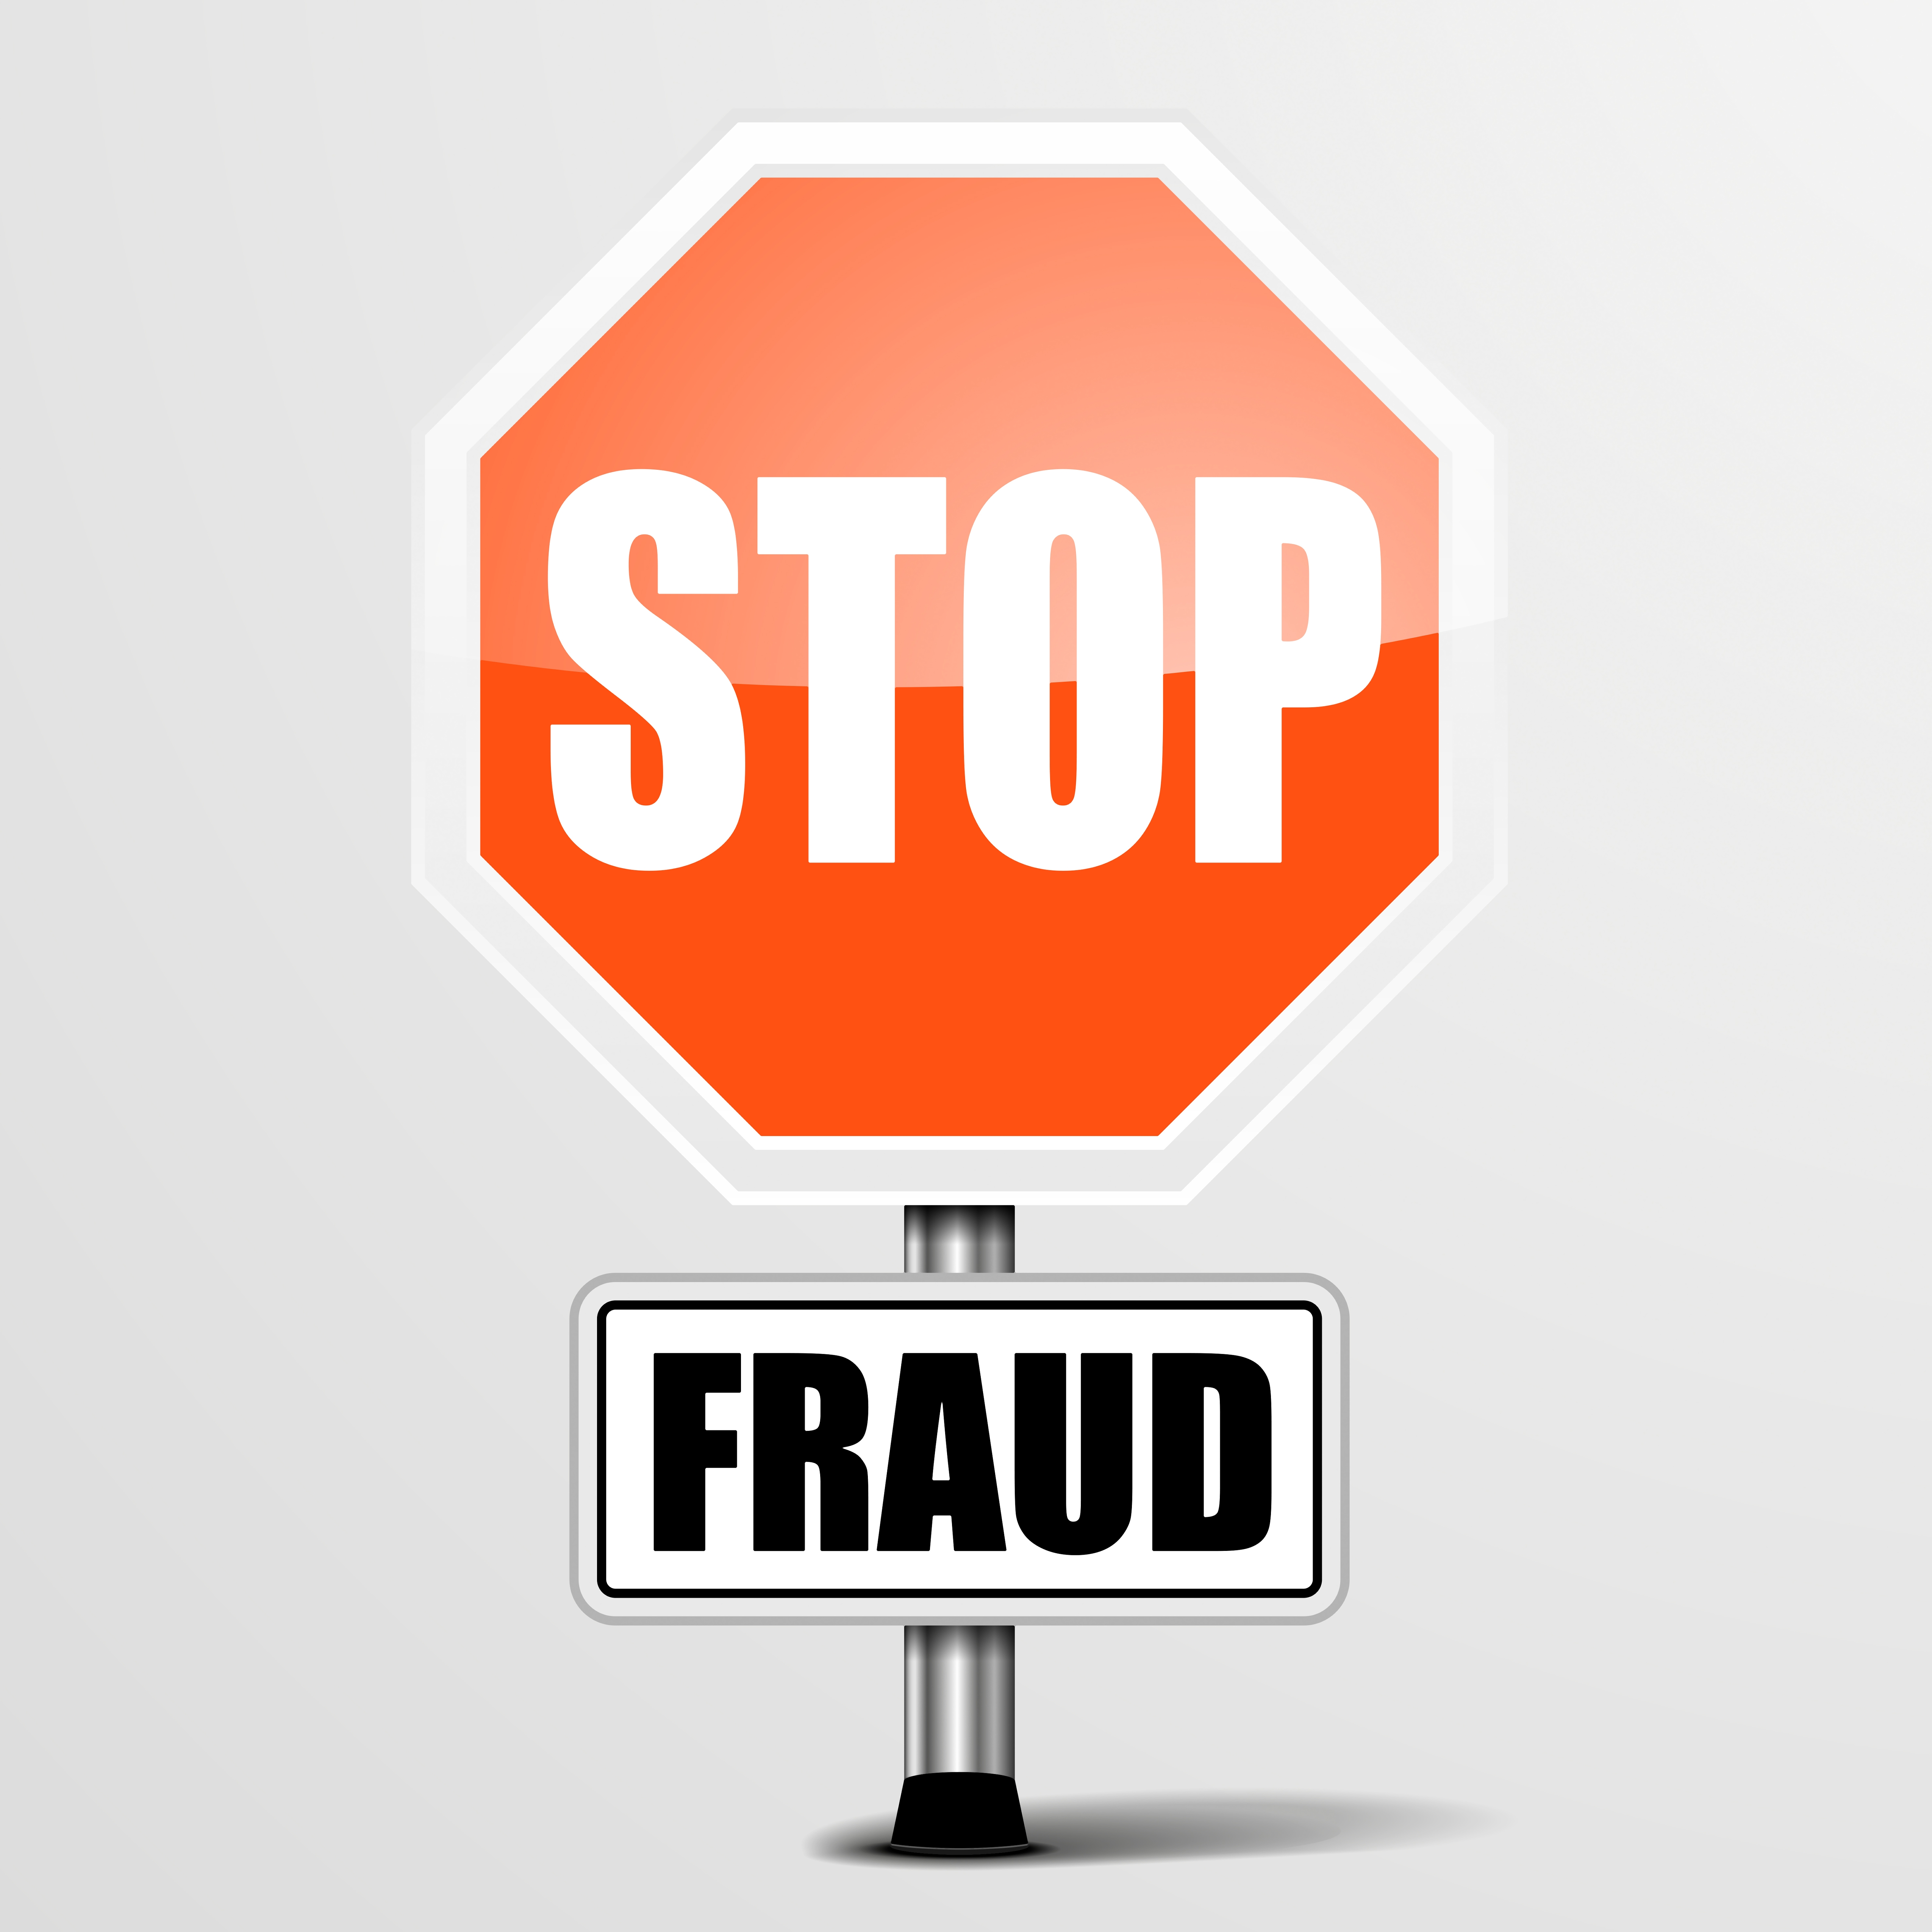 Stop Fraud Image